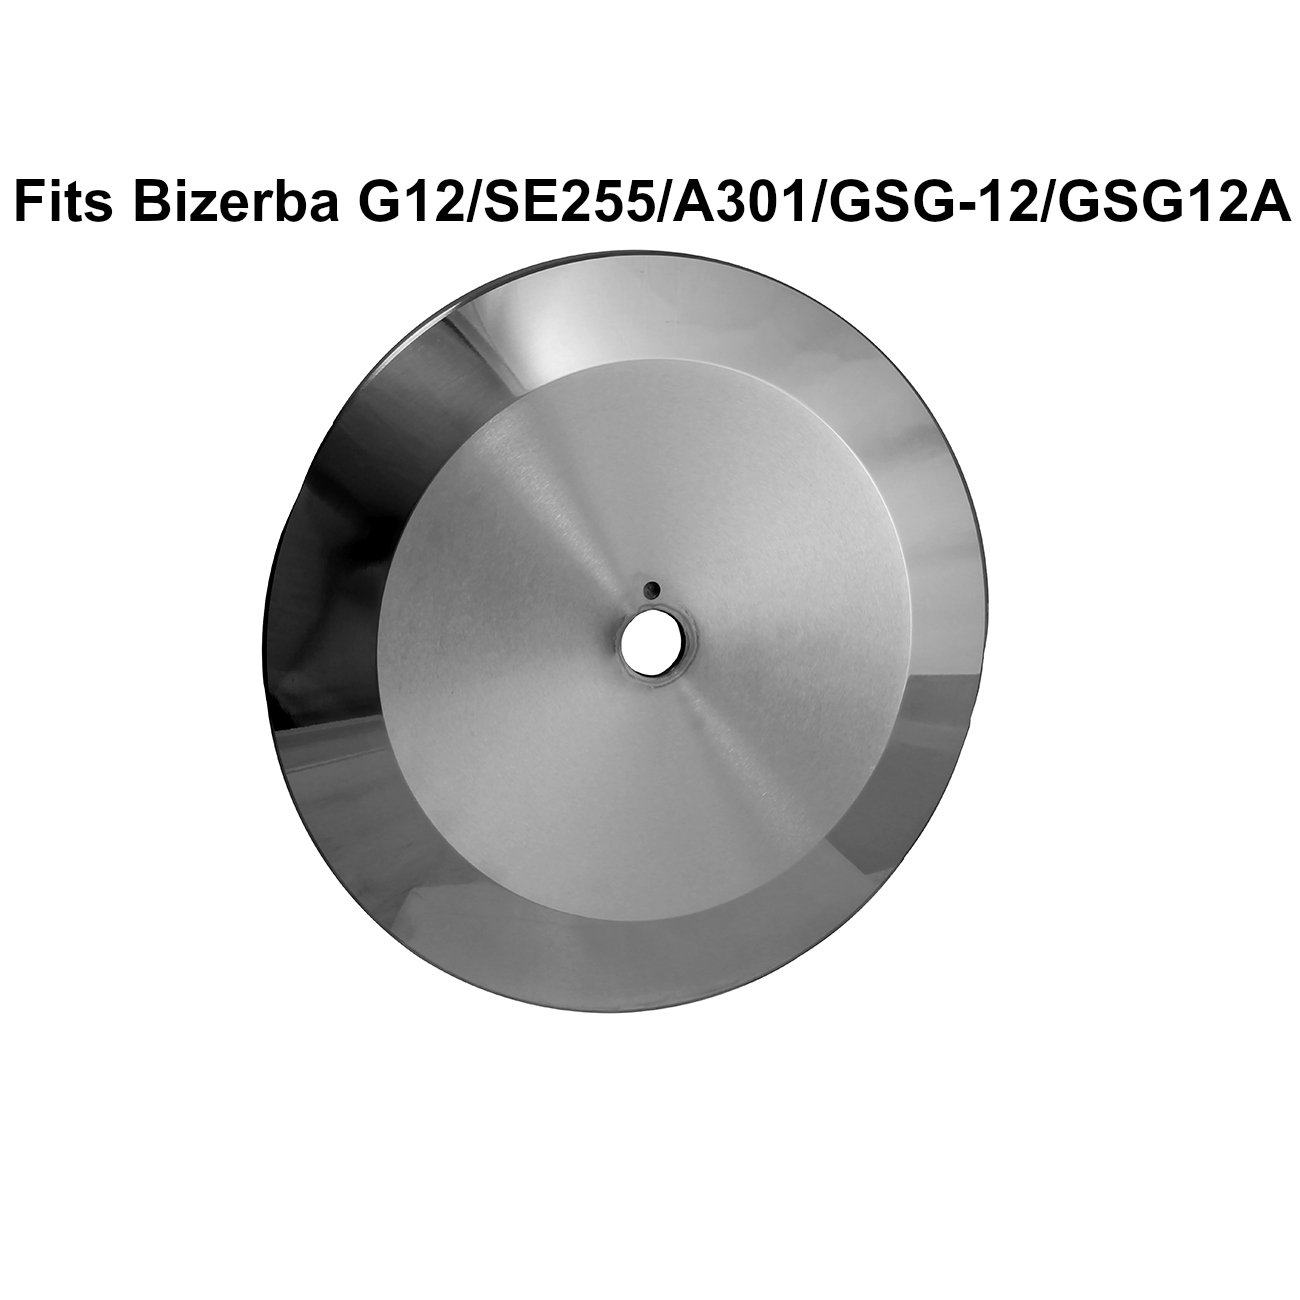 Replacement Blade for Bizerba Meat / Deli Slicer Fits Models G12/SE255/A301/GSG-12/GSG12A Made in Italy Sharp New